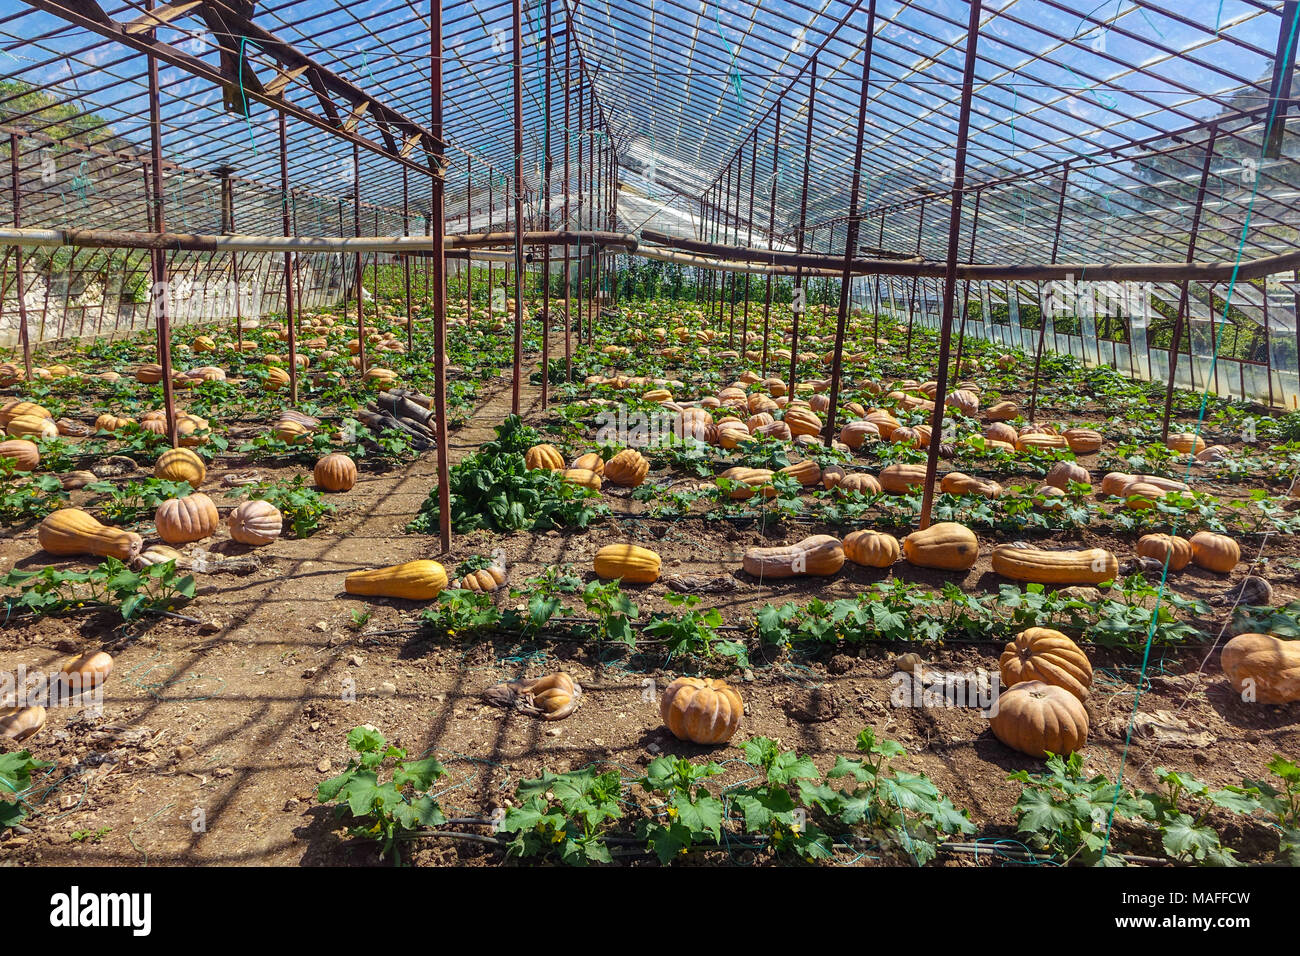 Large ripe pumpkins growing on ground in glass houses, Antalya. Turkey - Stock Image